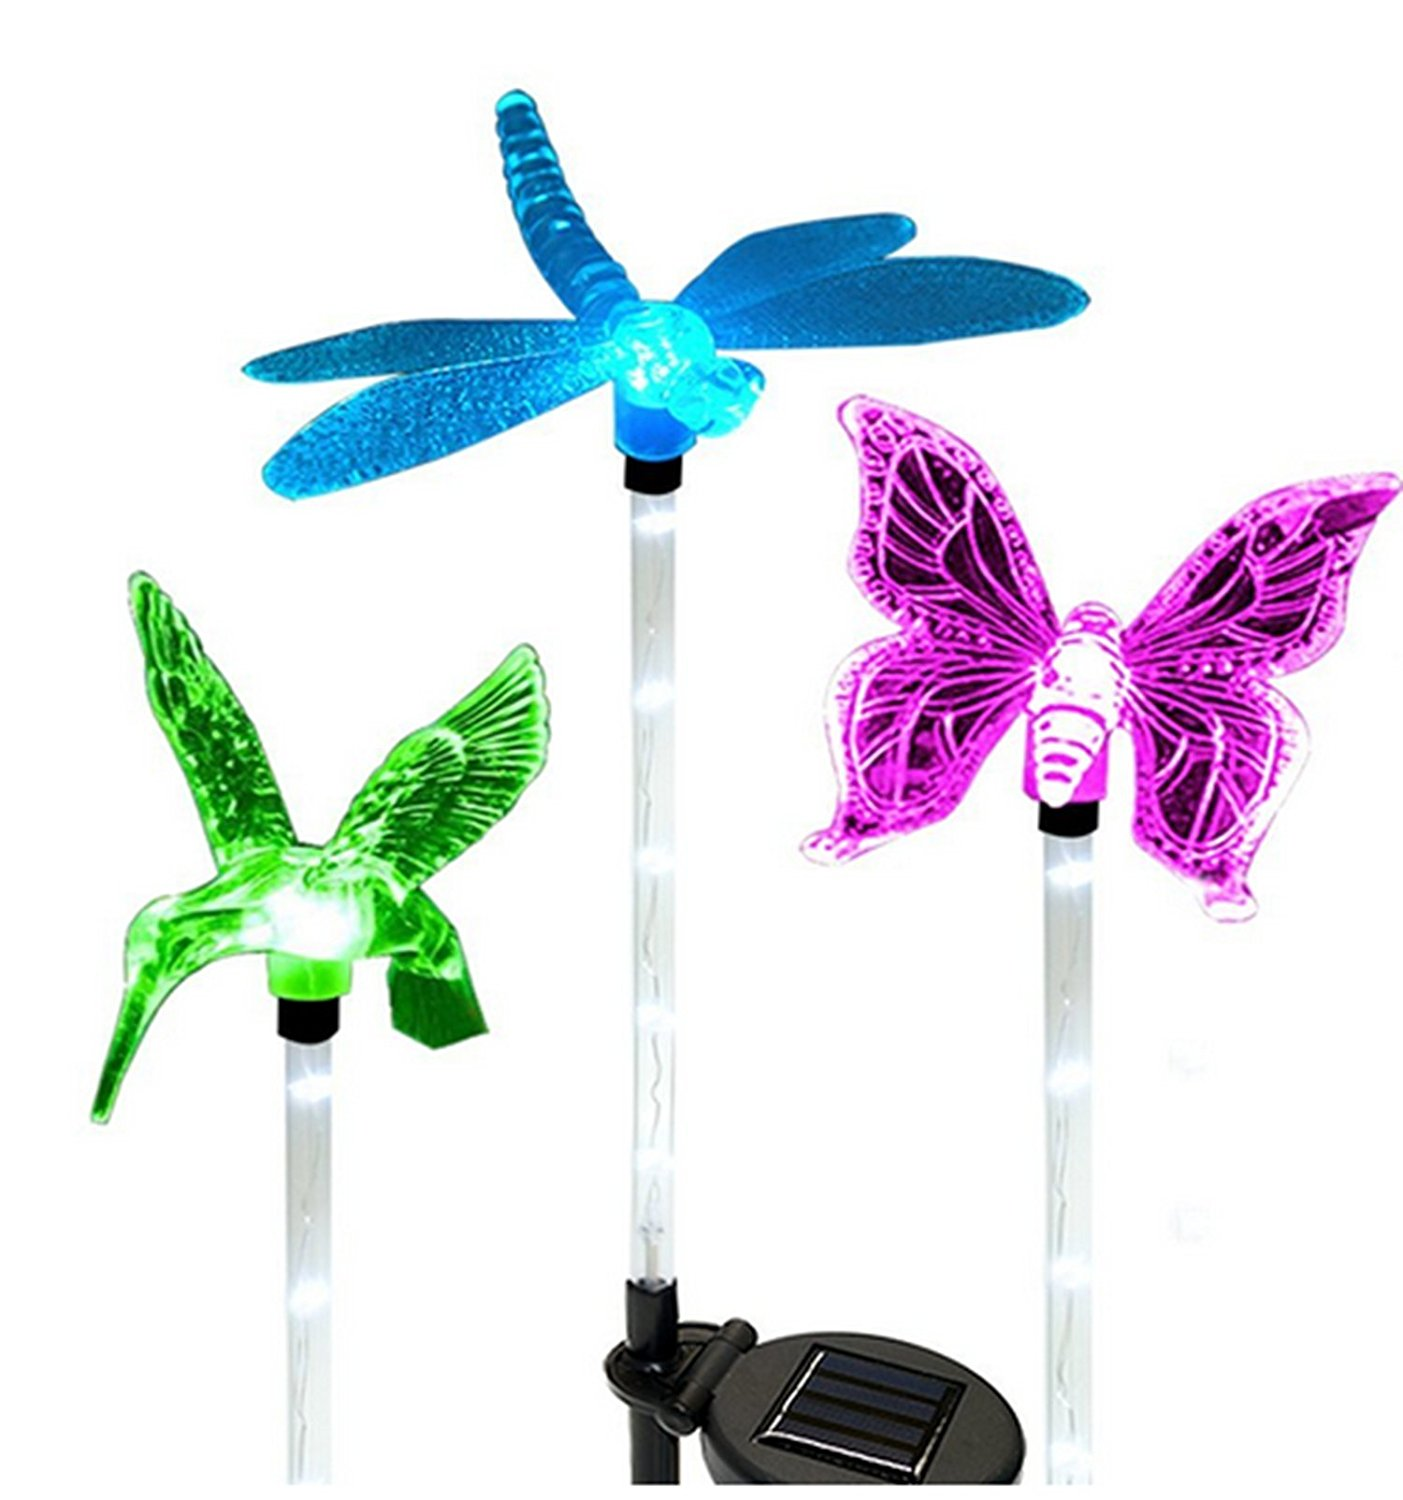 Gentil Solar Powered Garden Lights, Kohree Solar Garden Stake Light, Multi Color,  Hummingbird, Butterfly U0026 Dragonfly (3 Pack)